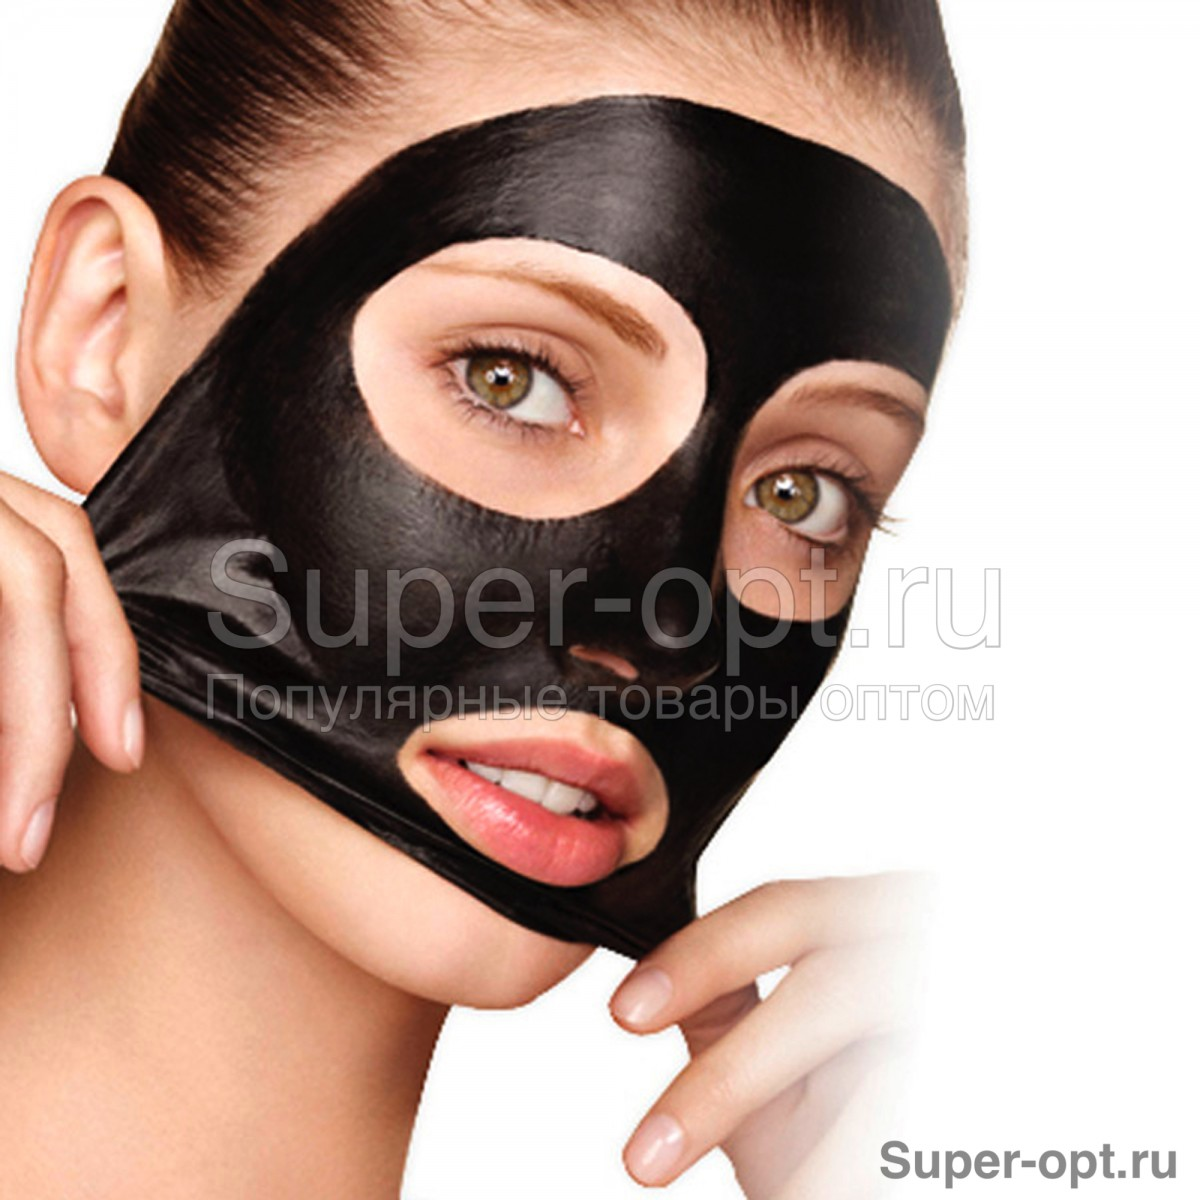 Очищающая маска для лица Black Mask Pilaten (50 гр)